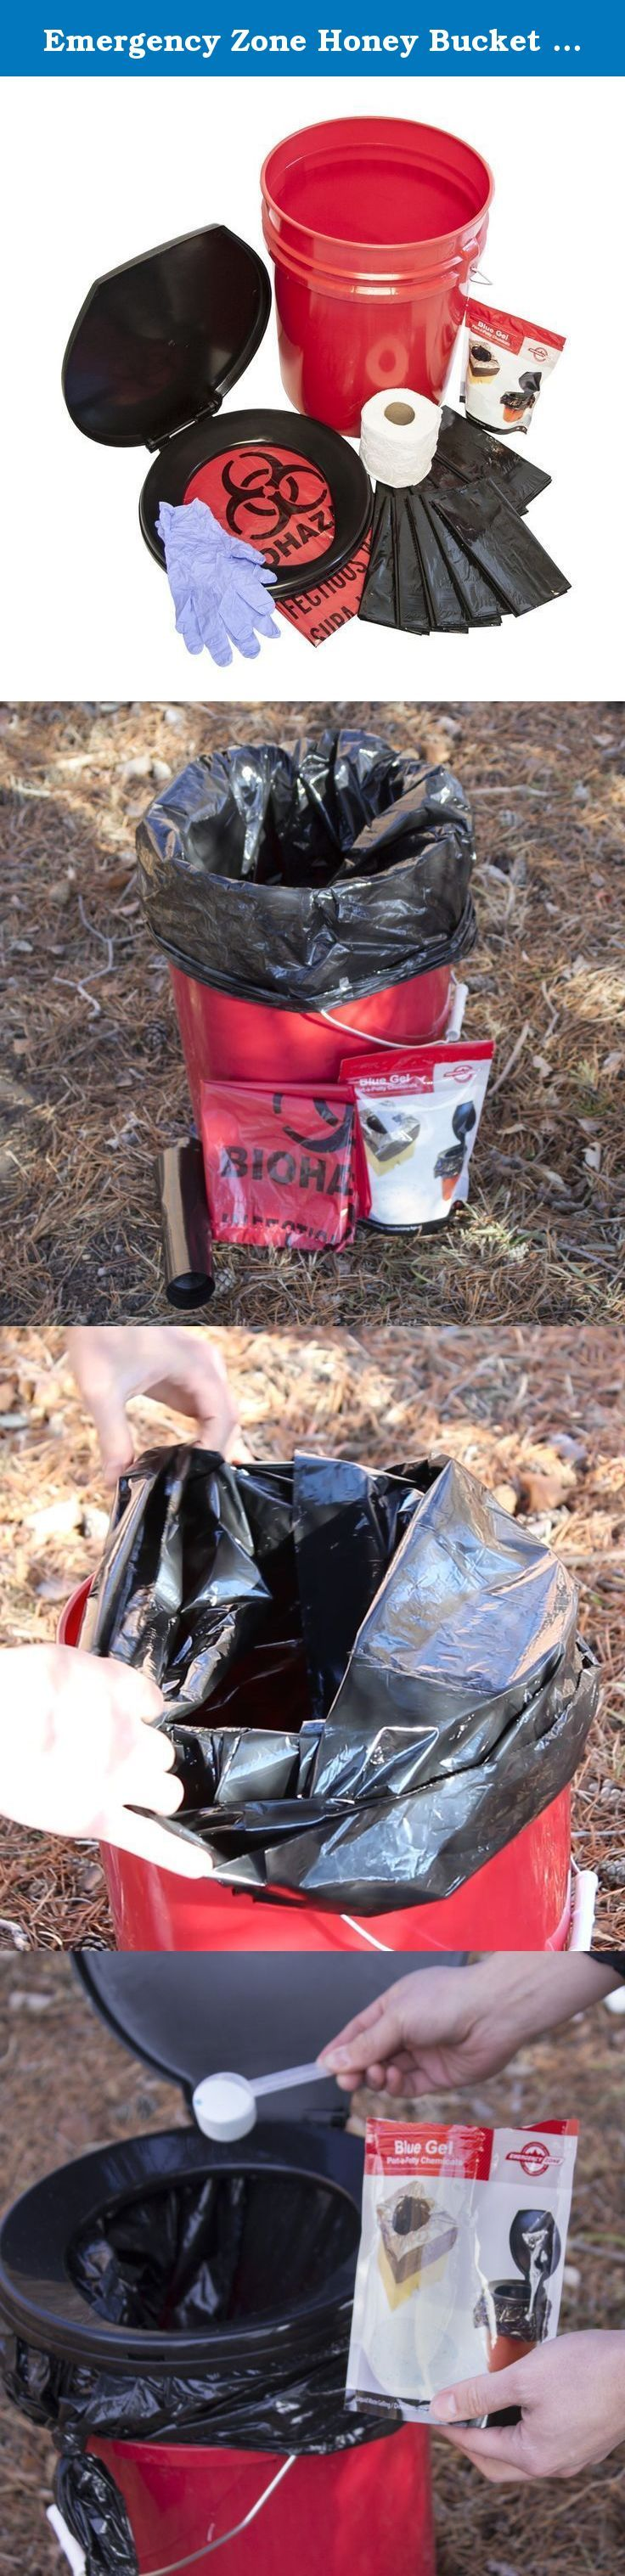 Emergency Zone Honey Bucket Style Toilet Complete Set with Liner and Chemicals. You never know when you will need this. The comlete set includes: 1 removable toilet seat, 1 red 5--Gallon bucket, 1 biohazard bag, 5 toilet liners, 5 toilet chemical packs, 1 roll toilet paper, 2 2oz bottles of hand sanitizer, 1 pair of gloves for sanitary changing of toilet liners.